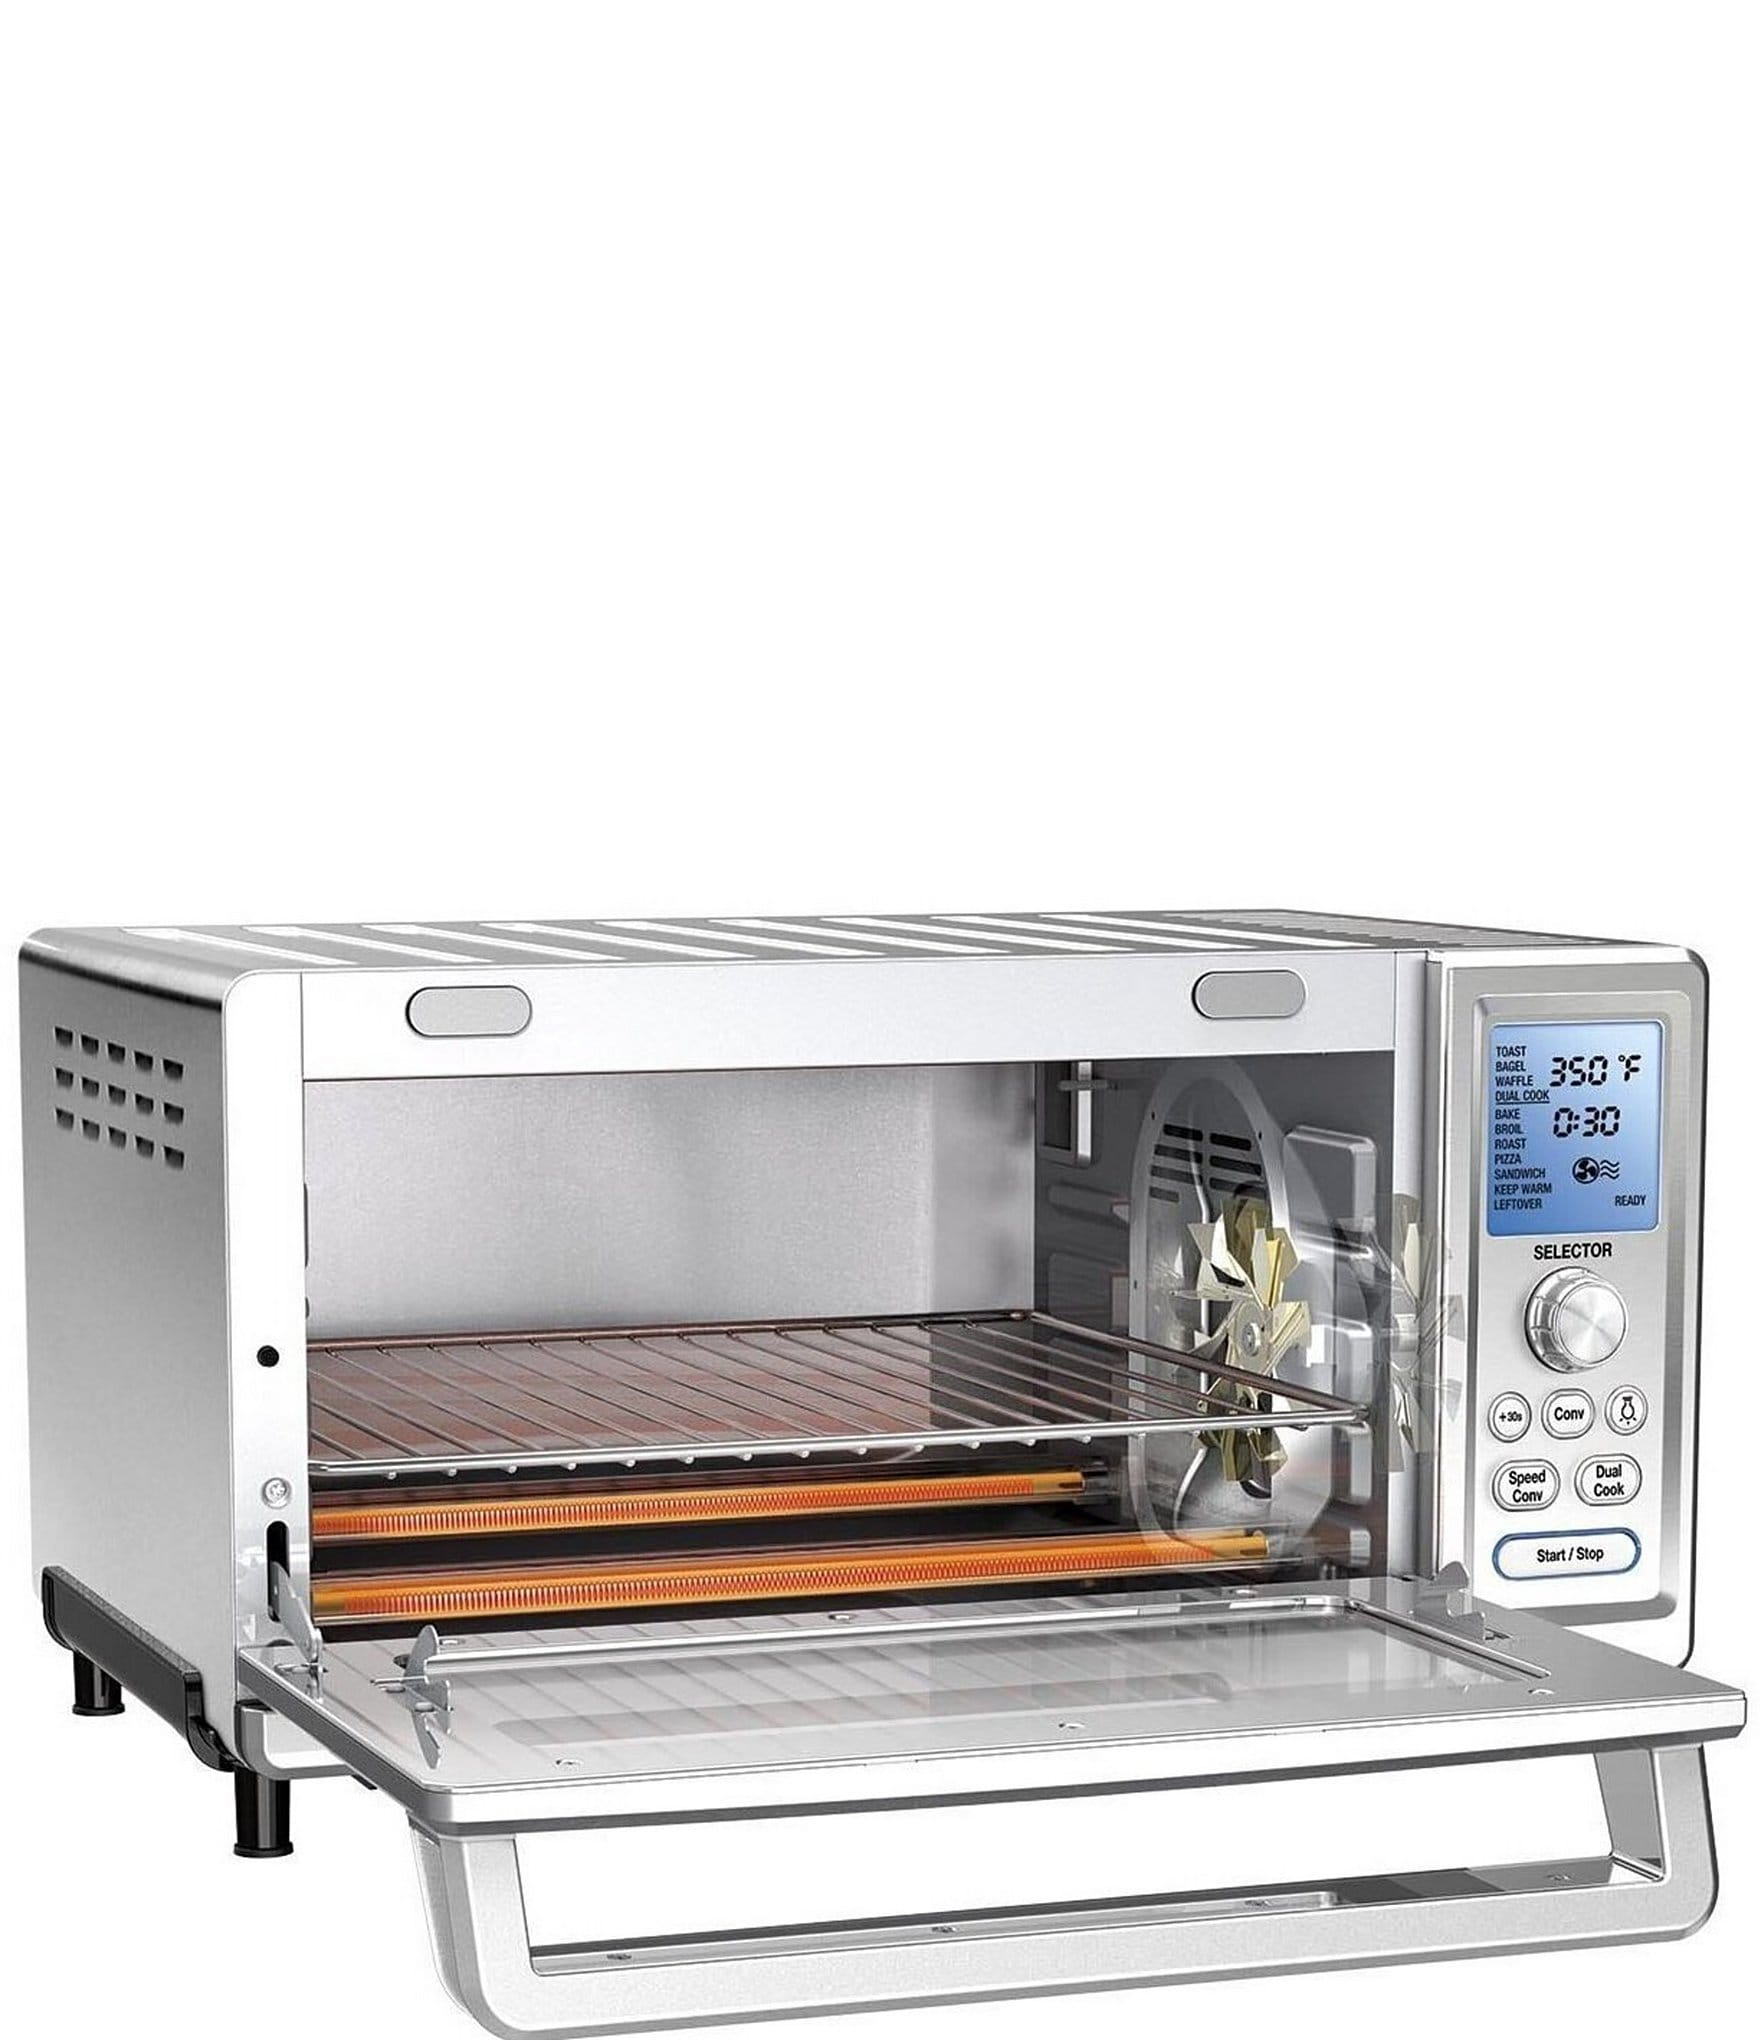 Cuisinart Chef's Convection Toaster Oven | Dillard's